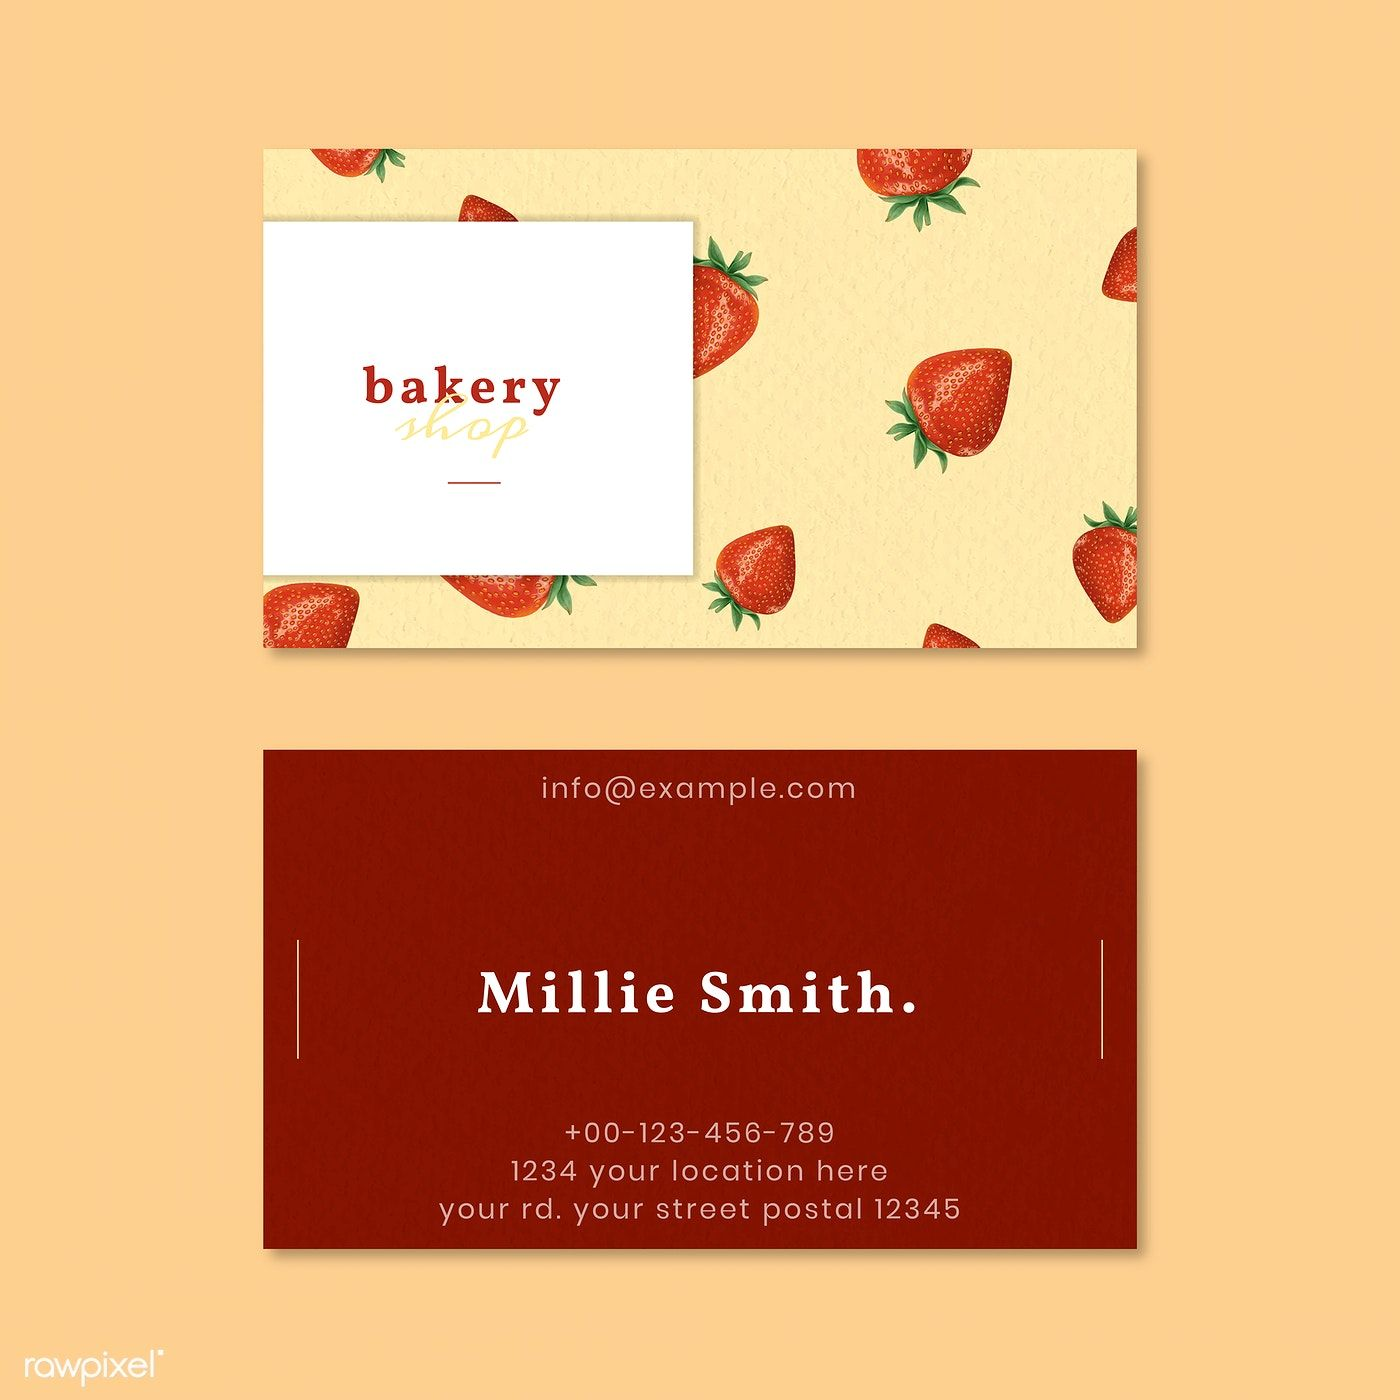 Hand Drawn Bakery Name Card Template Vector Free Image By Rawpixel Com Aew Bakery Business Cards Baking Business Cards Name Cards